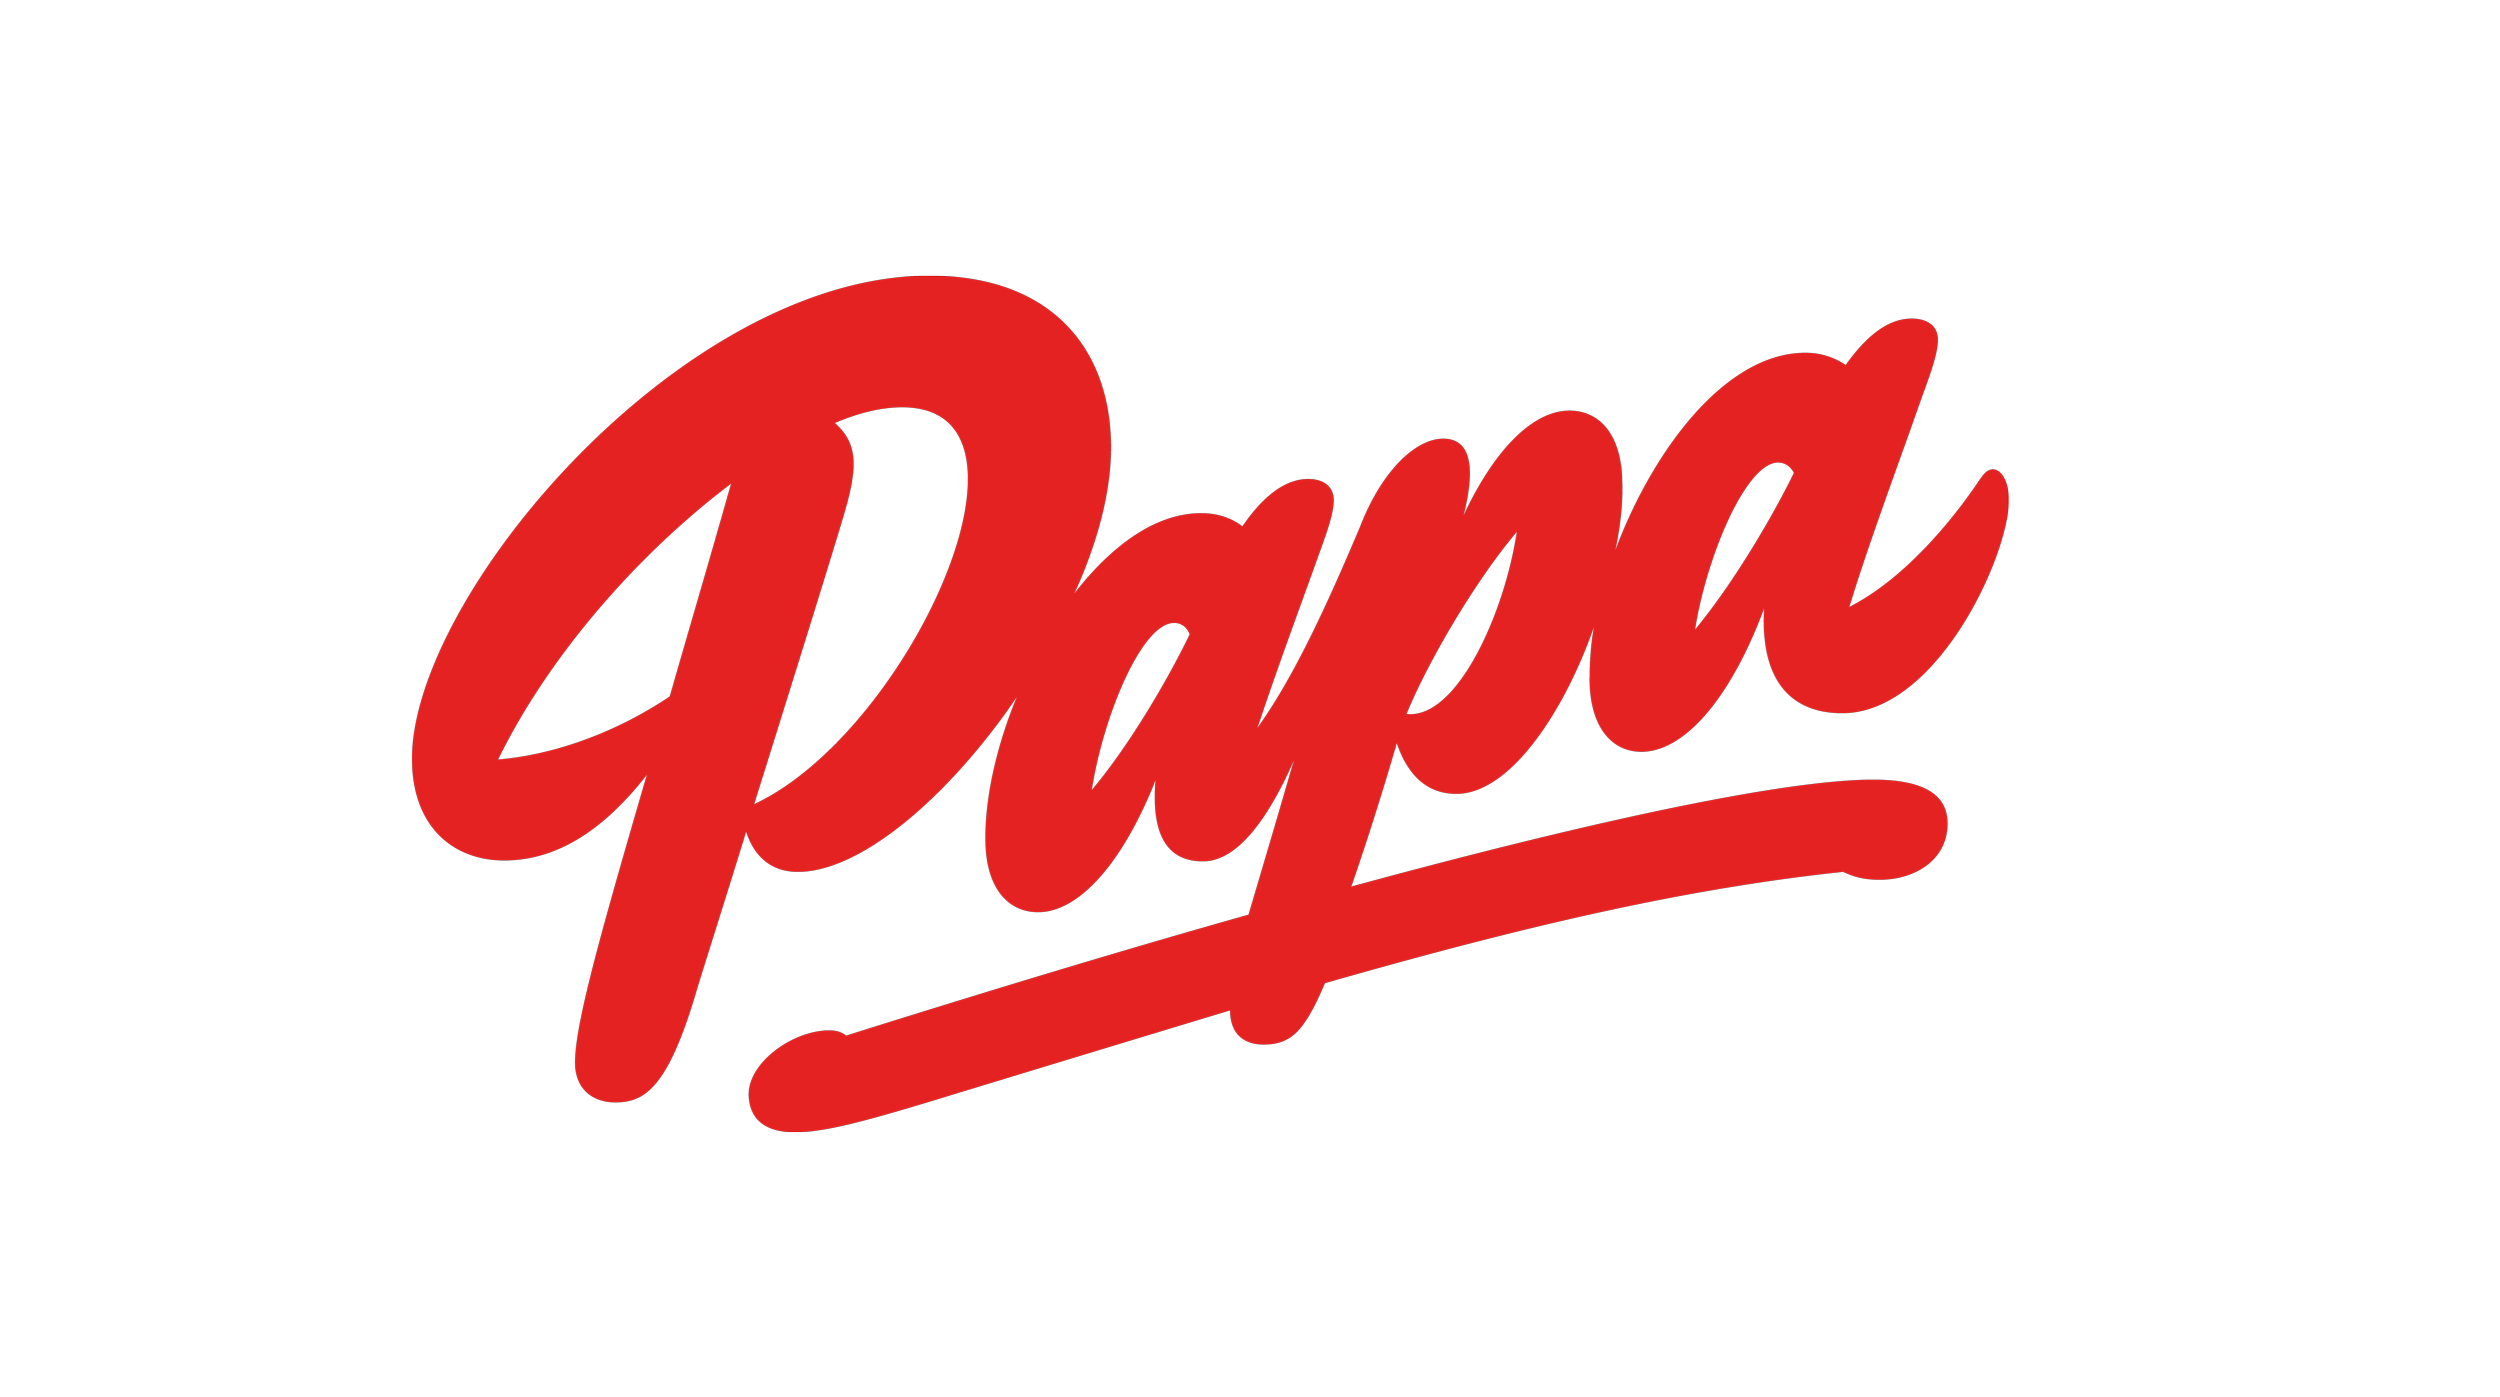 PAPAMUSIC_logo_Yanina-Arabena_Guillermo-Vizzari_1.png